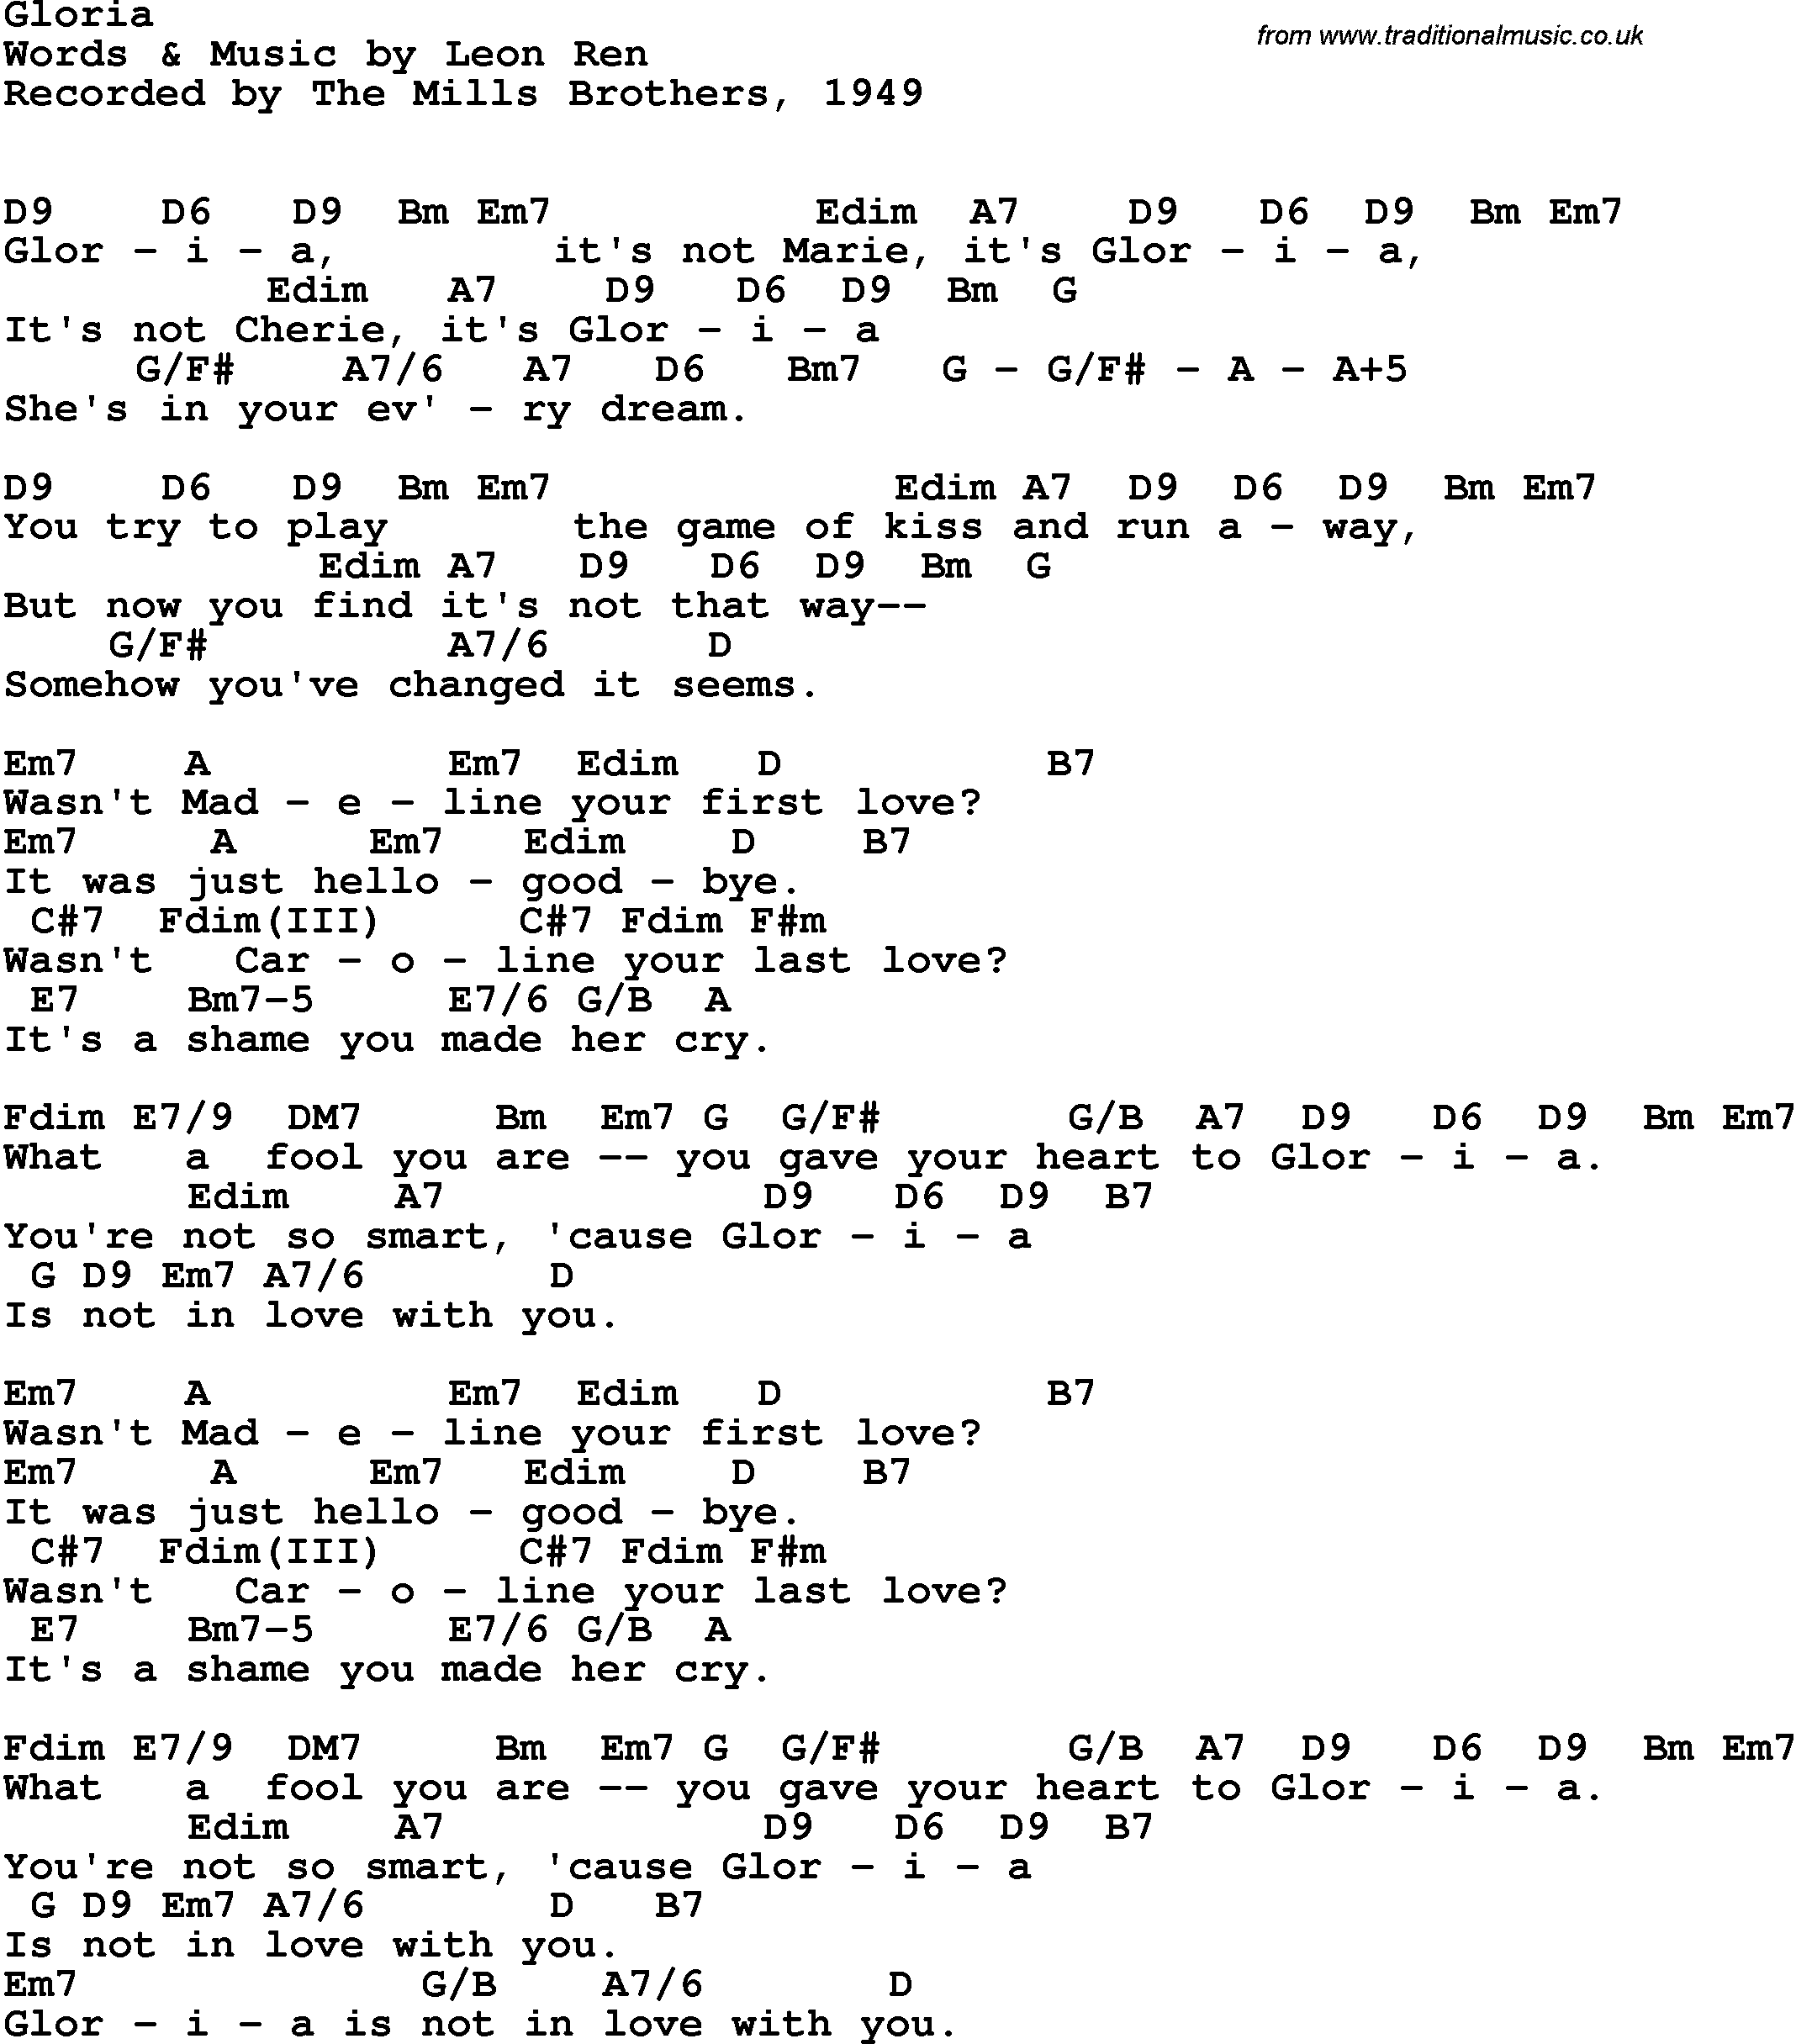 Song lyrics with guitar chords for Gloria - The Mills Brothers, 1949